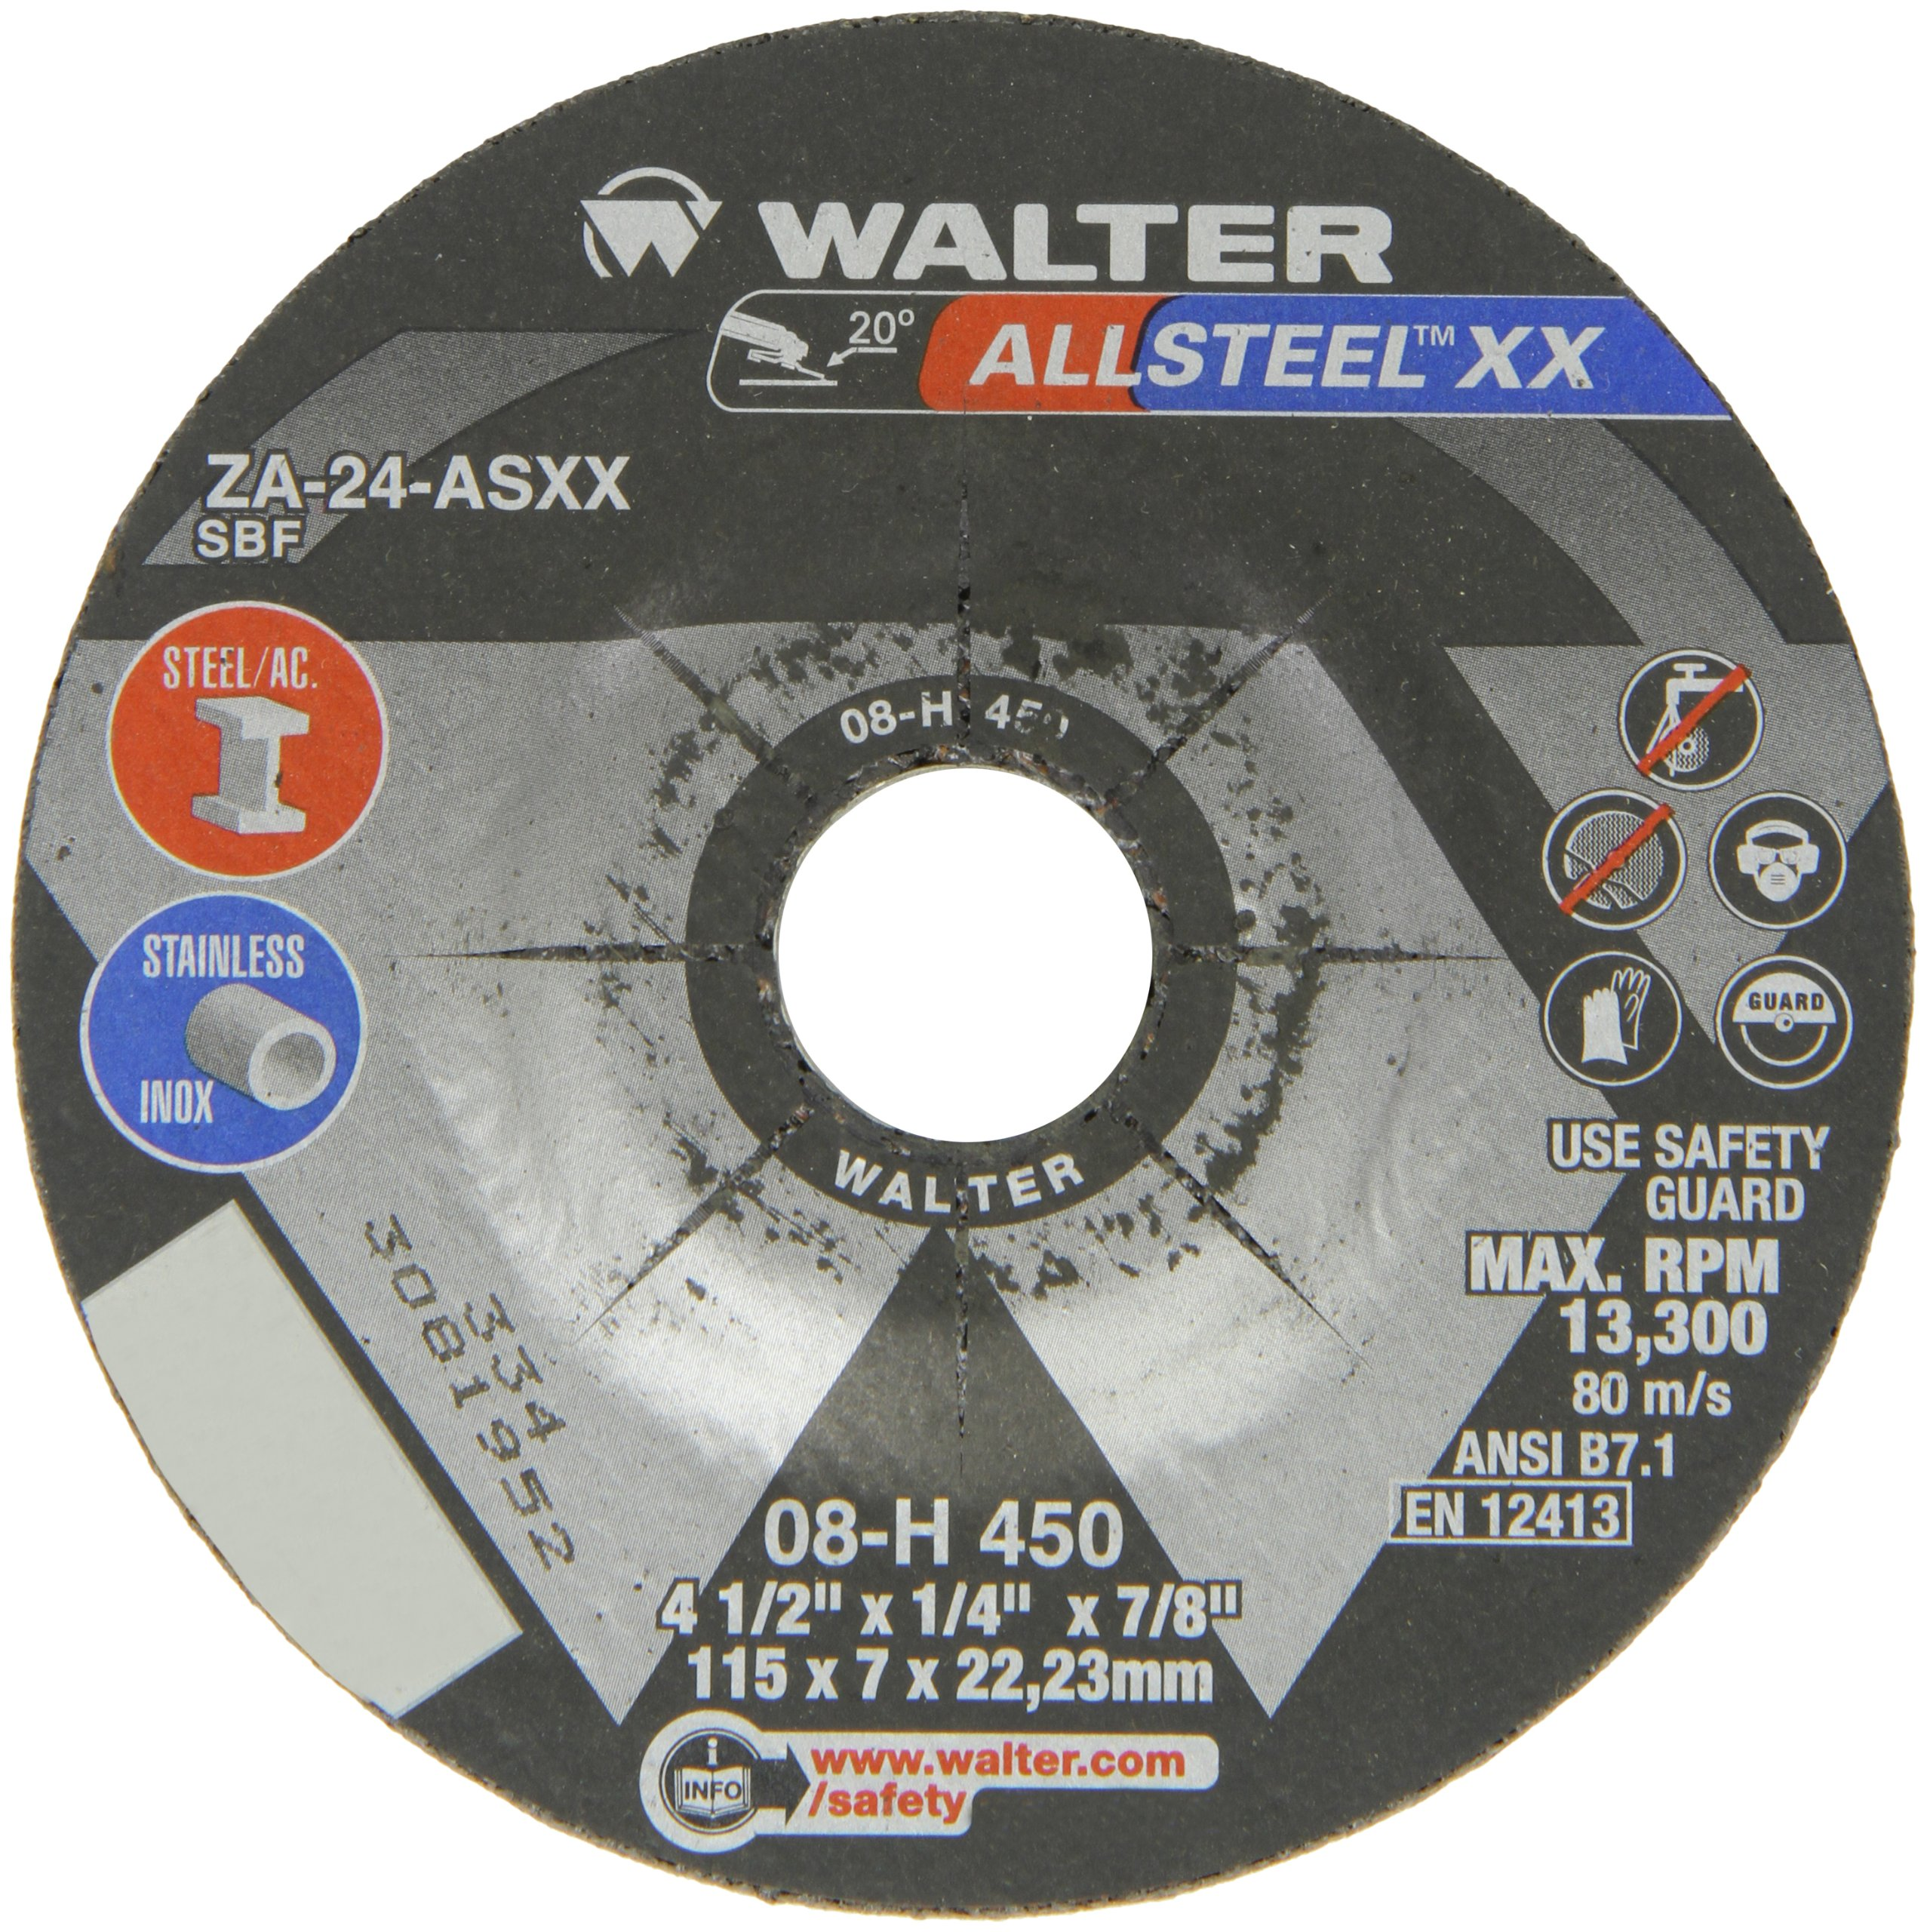 Walter Allsteel XX Exceptional Grinding Wheel, Type 27, Round Hole, Aluminum Oxide, 4-1/2'' Diameter, 1/4'' Thick, 7/8'' Arbor, Grit A-24-AXX (Pack of 25) by Walter Surface Technologies